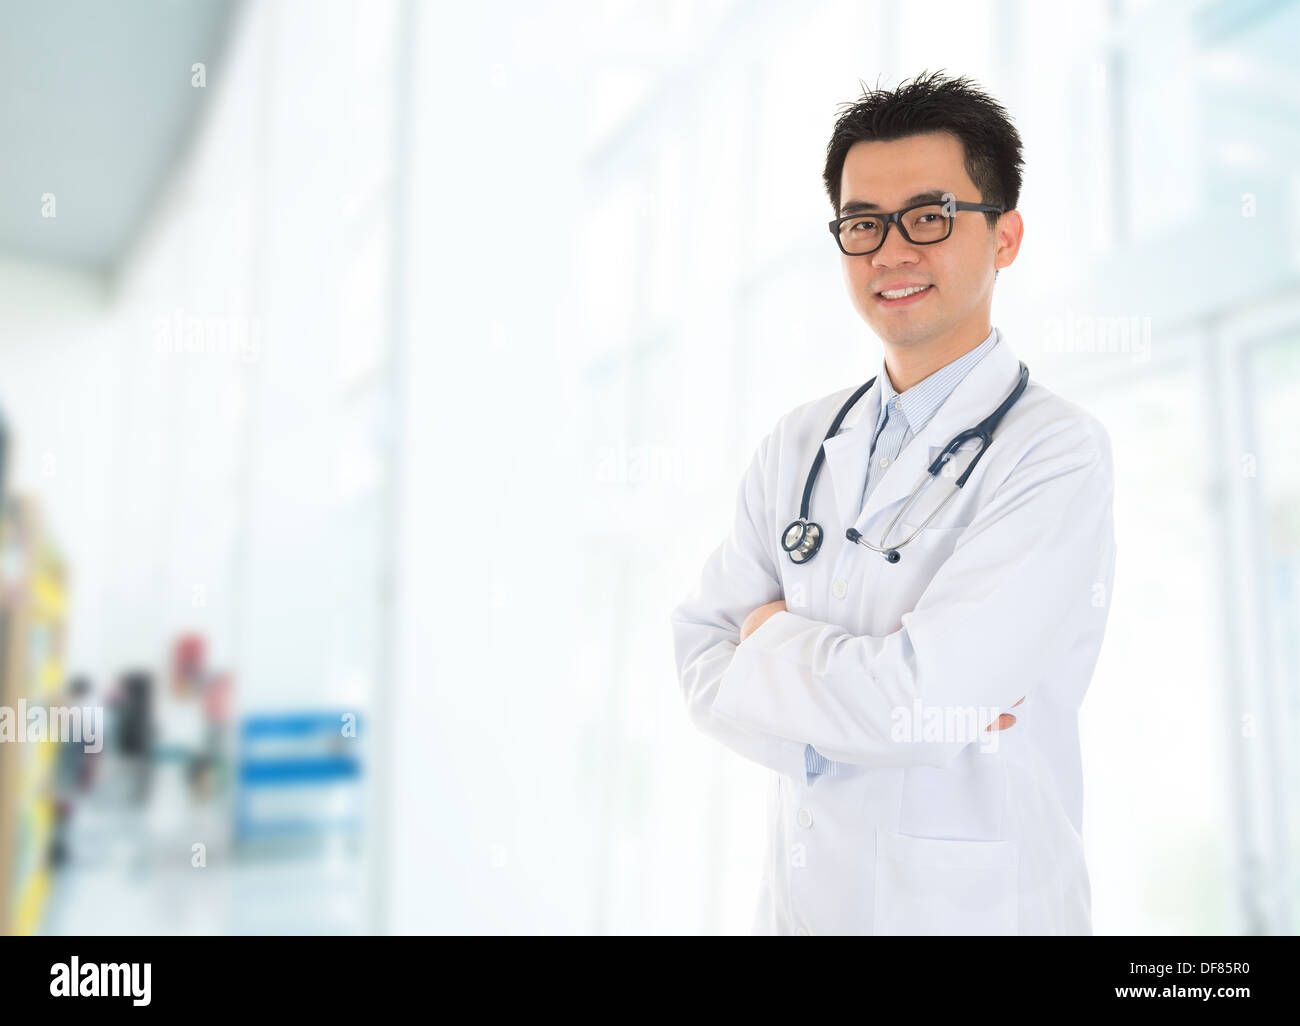 Asian male medical doctor with confident smile standing inside hospital building. - Stock Image